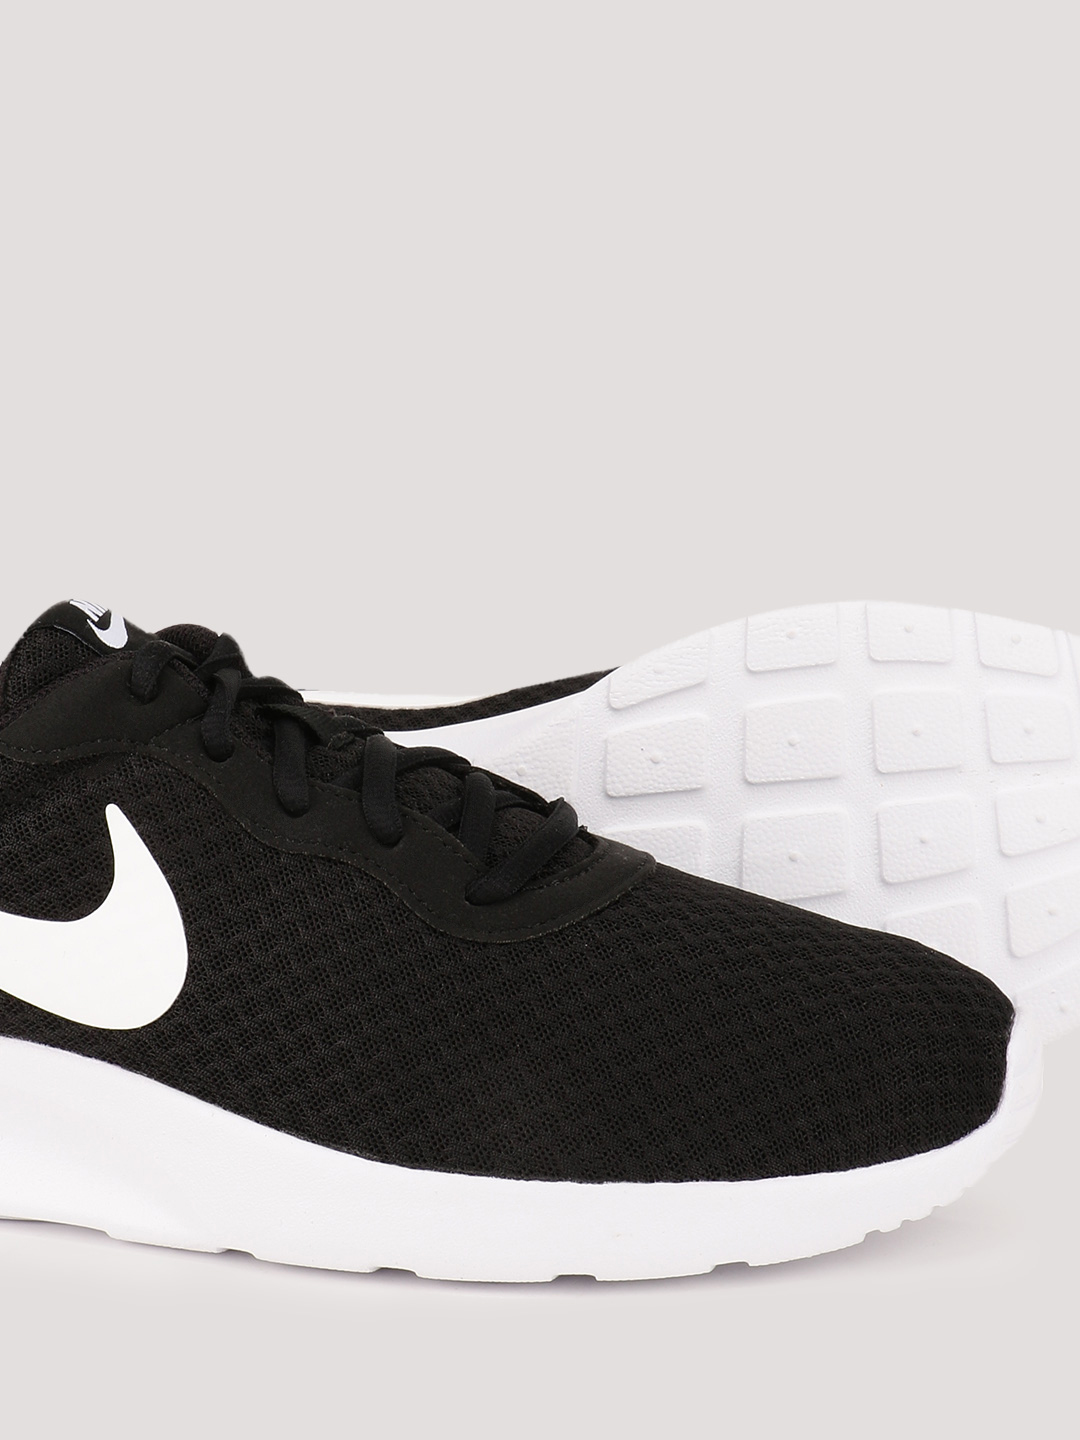 latest discount where to buy outlet online Buy Nike Black/White Tanjun Trainers for Men Online in India